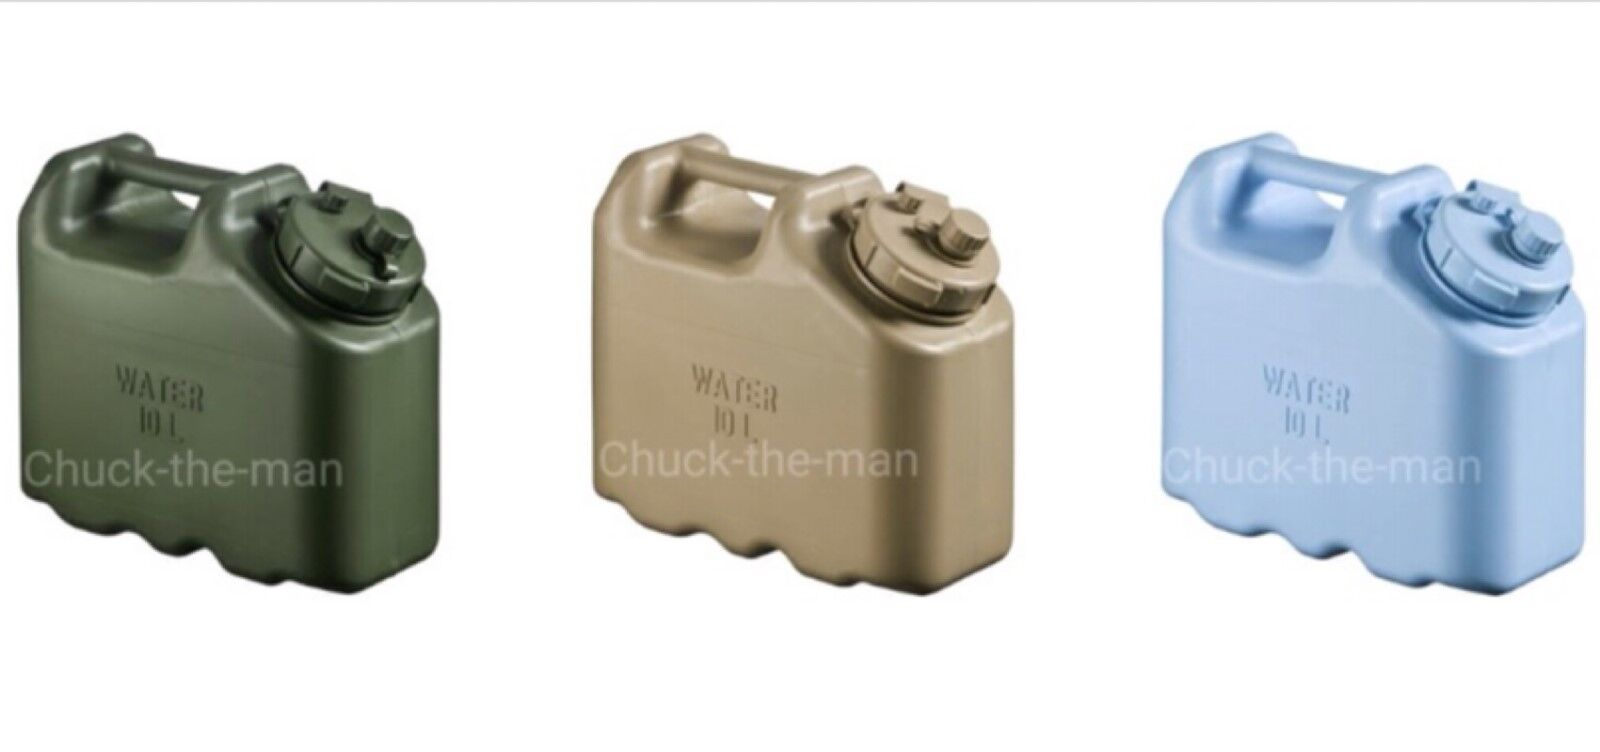 SCEPTER  MILITARY WATER CANS Jerry Container Camping Survival Emergency 10L  lightning delivery